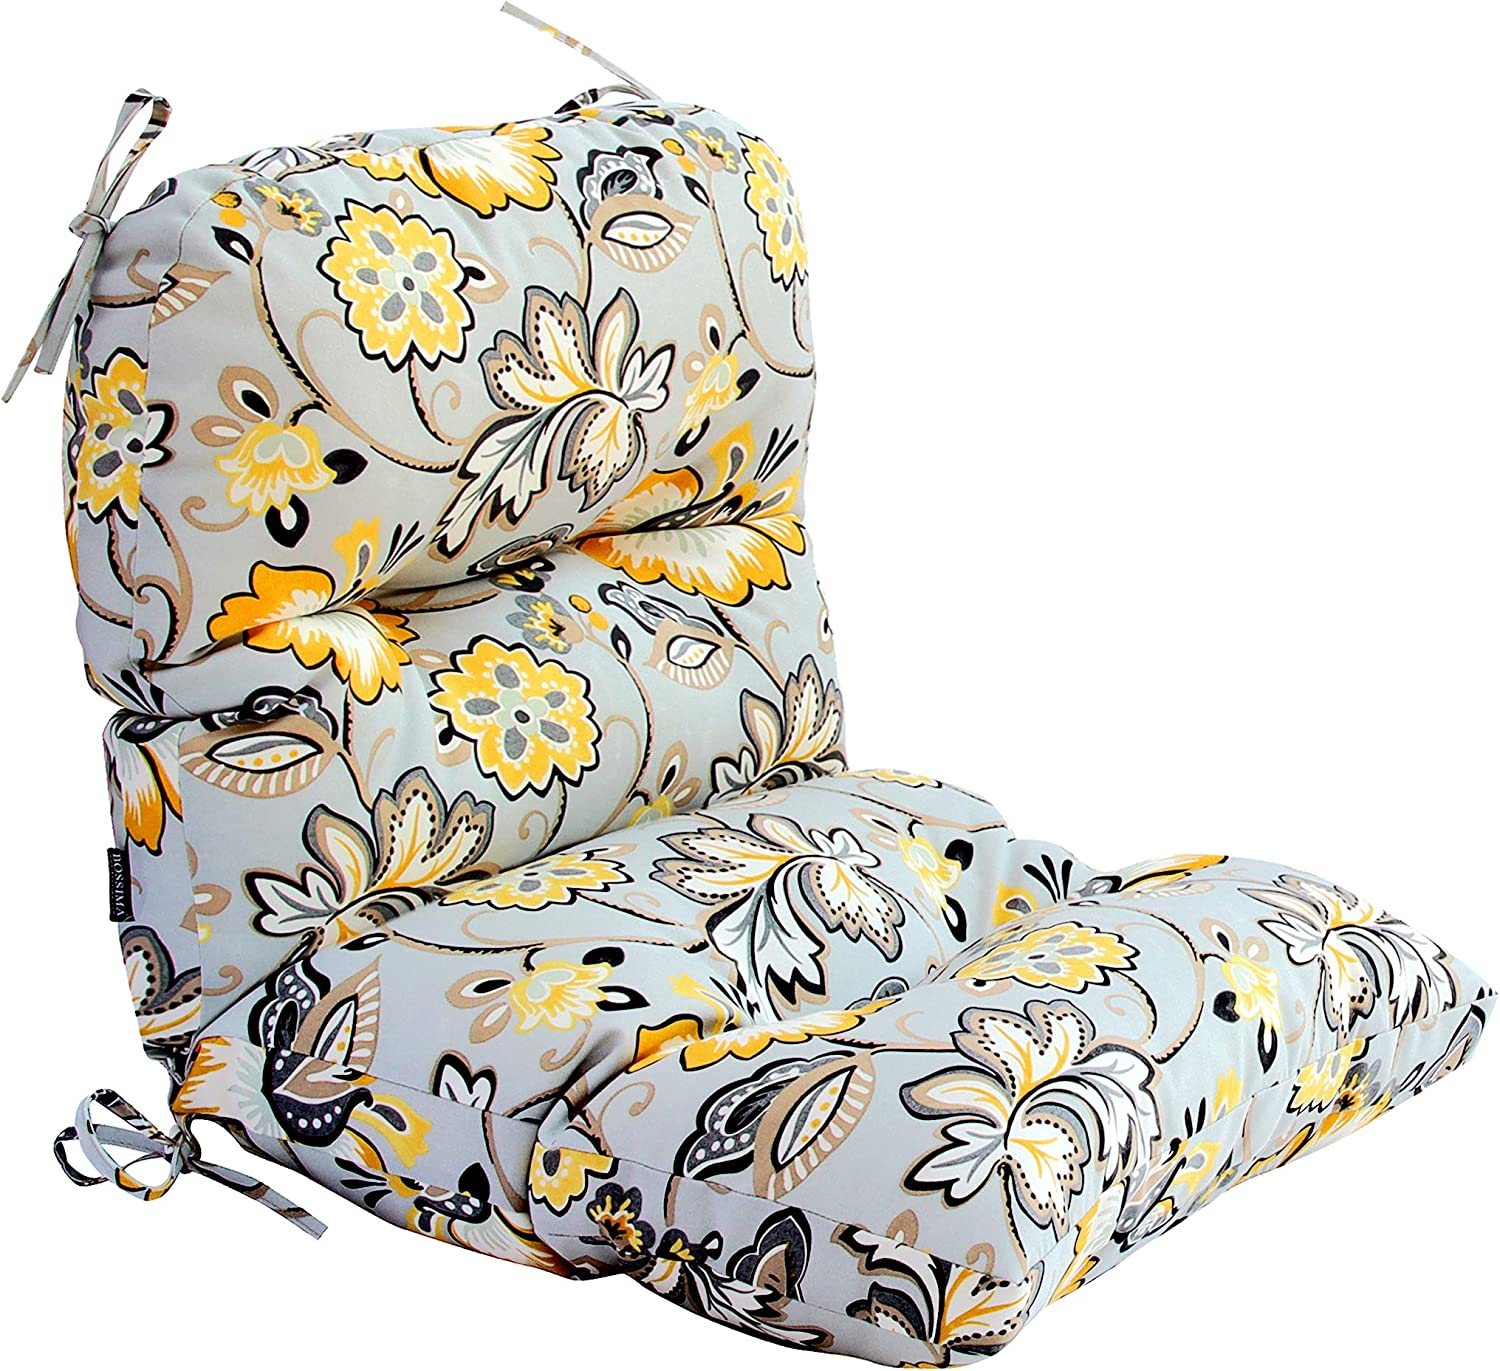 BOSSIMA Outdoor Indoor High Back Chair Tufted Cushions Comfort Replacement Patio Seating Cushions (Flower Prints Grey)